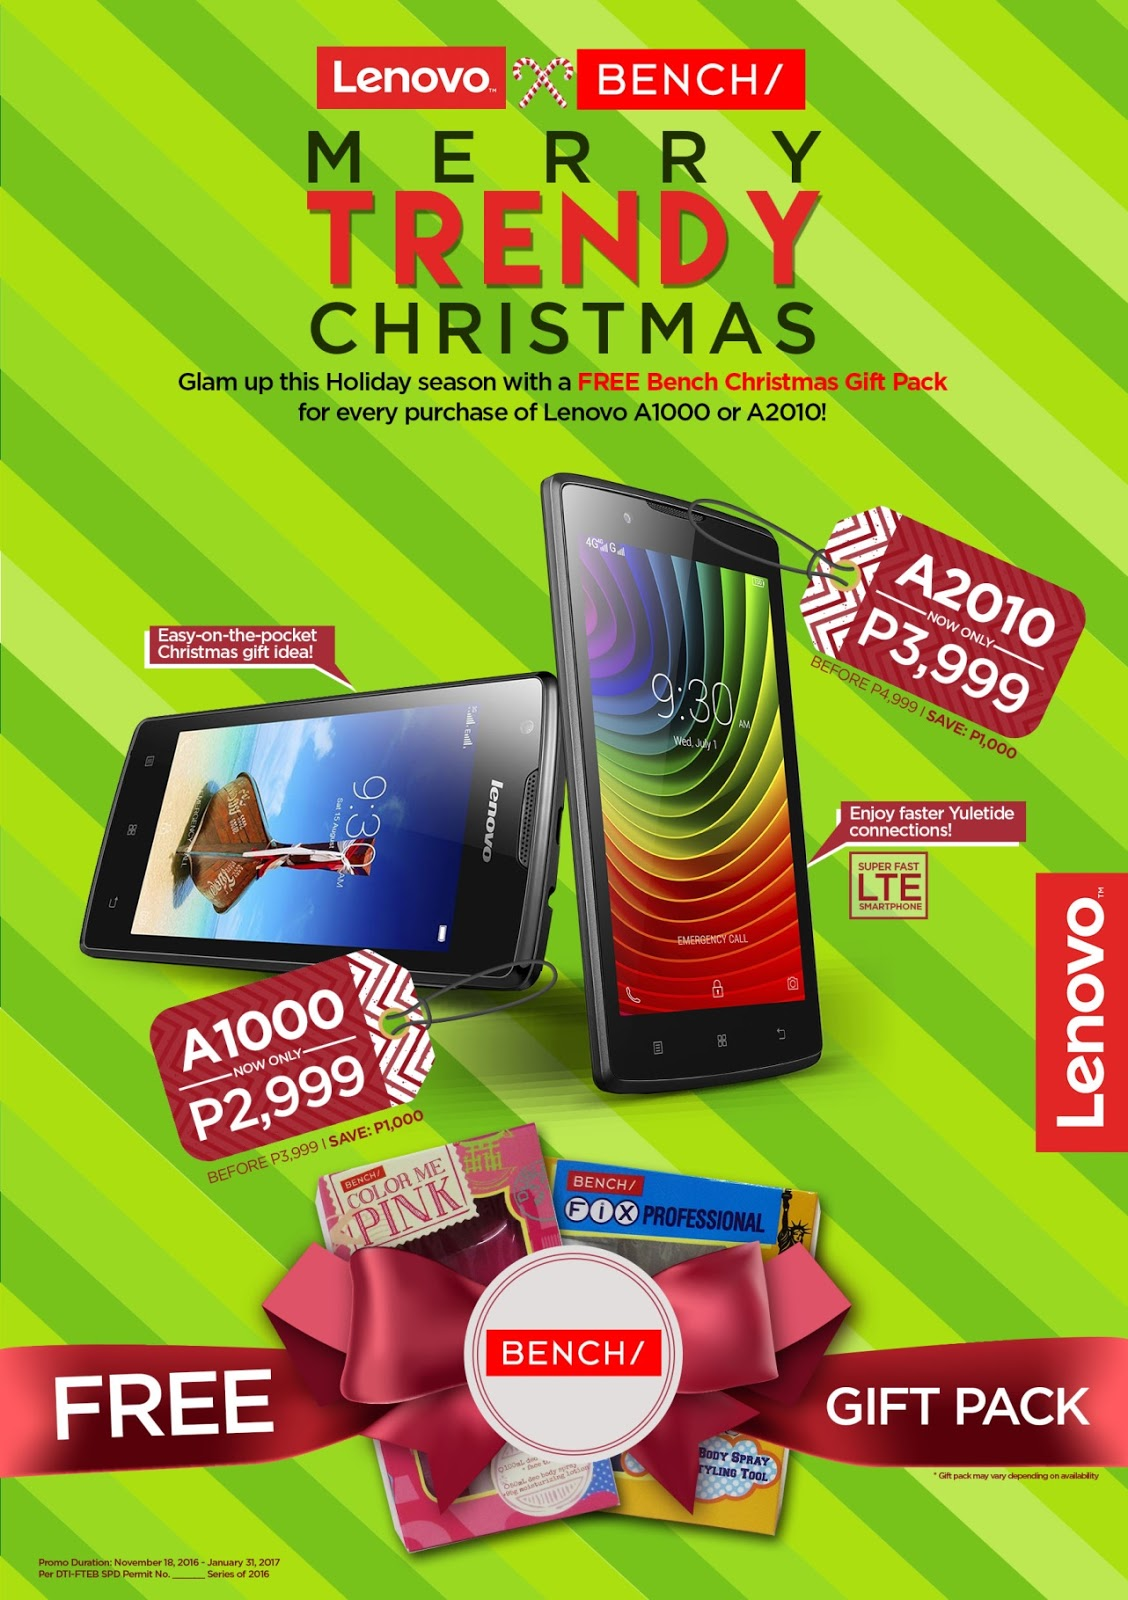 Lenovo Merry Trendy Christmas Promo